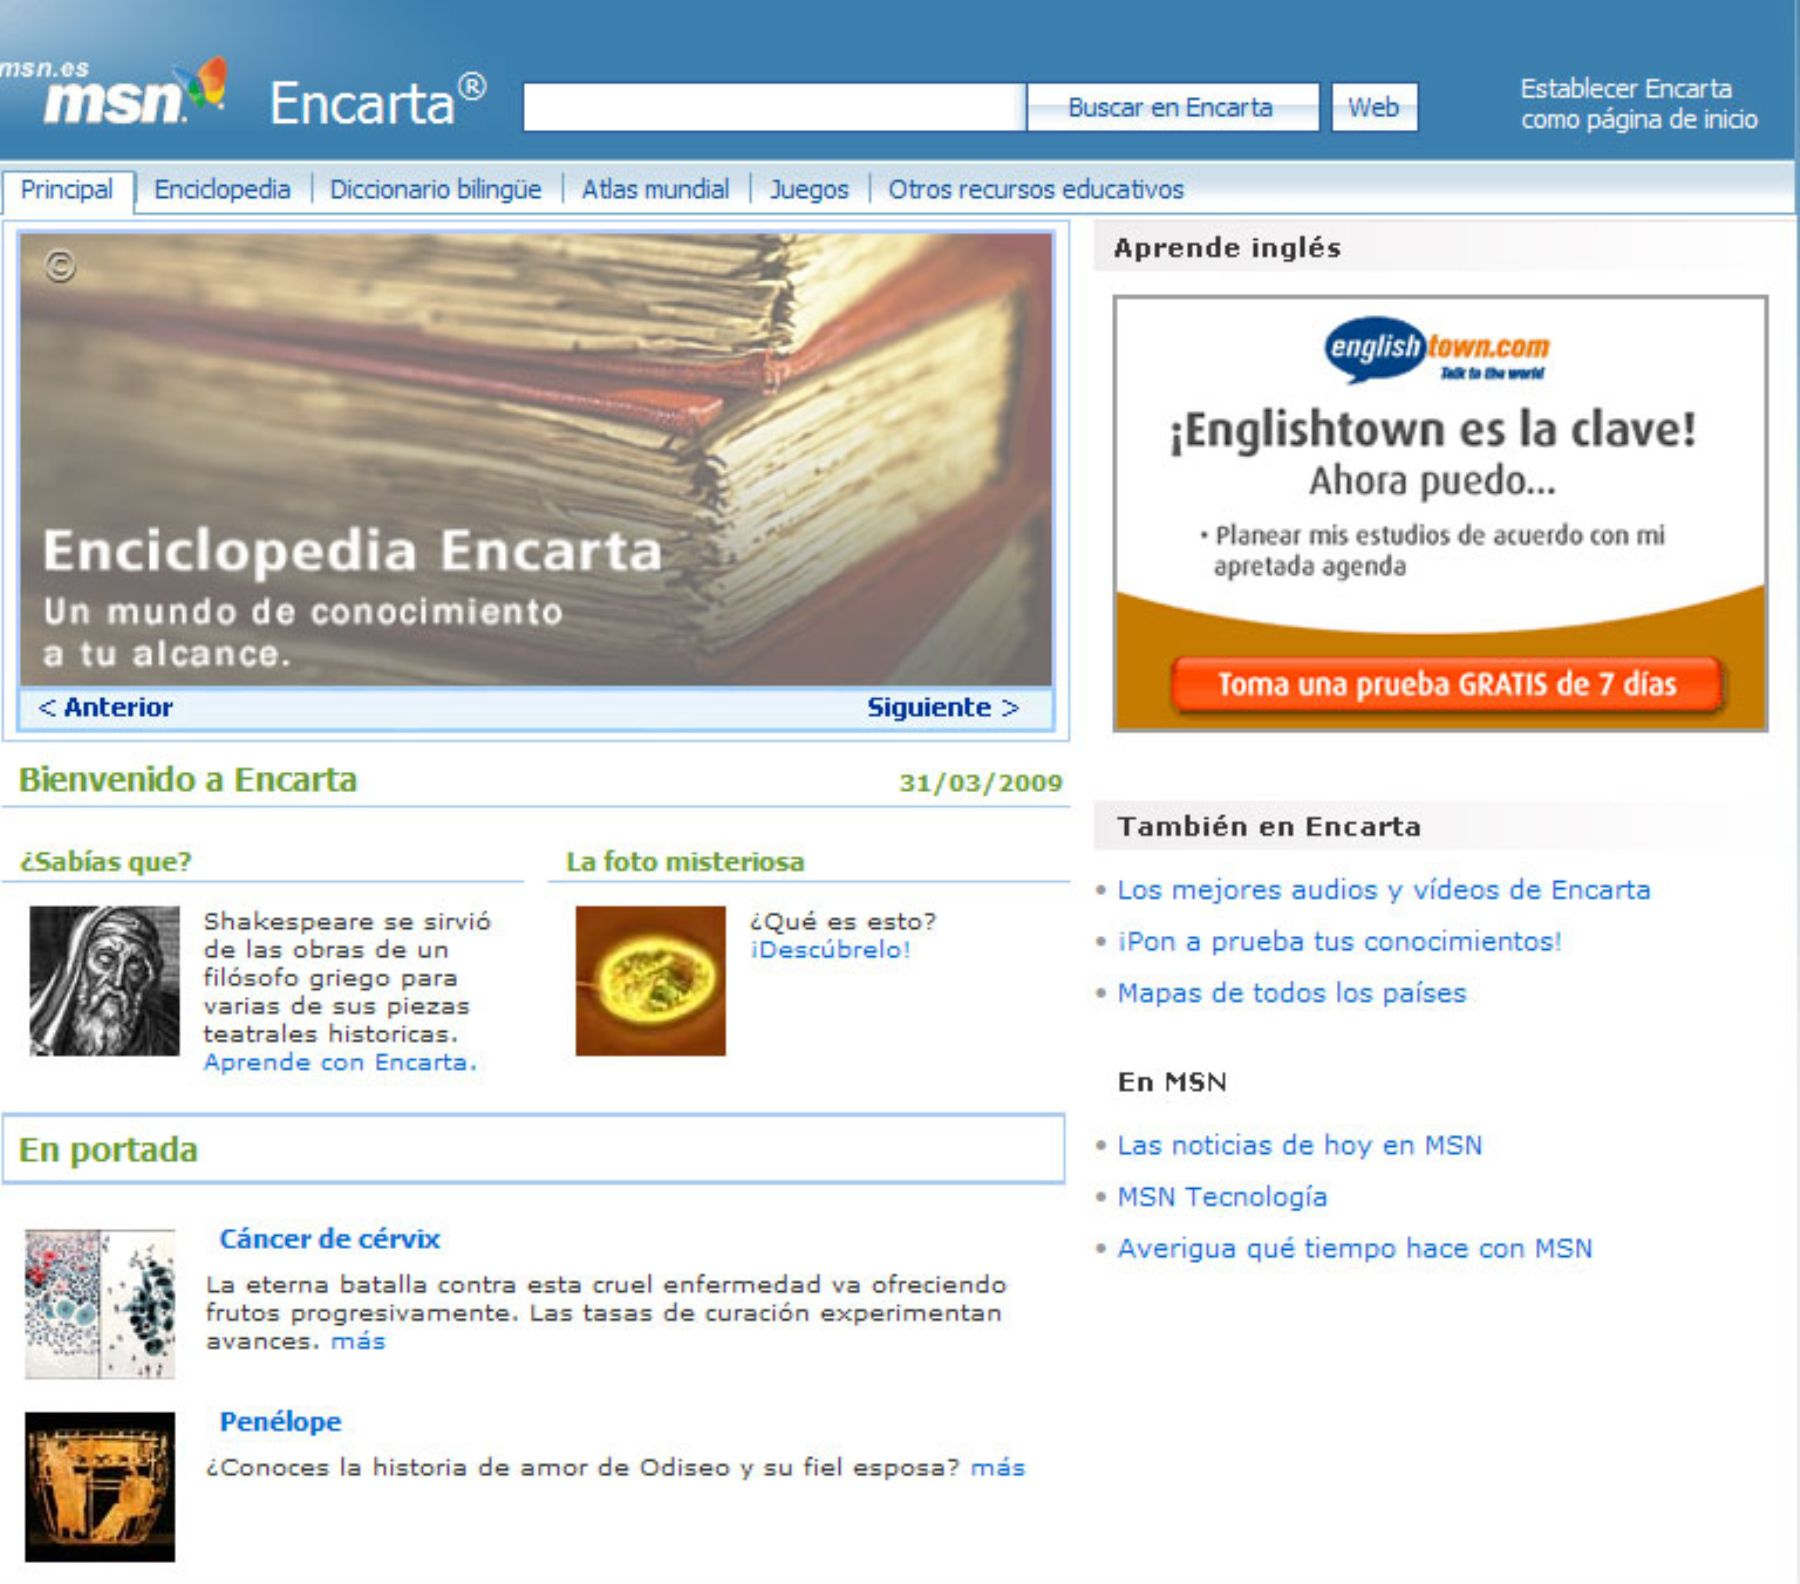 Microsoft Encarta dies after long battle with Wikipedia